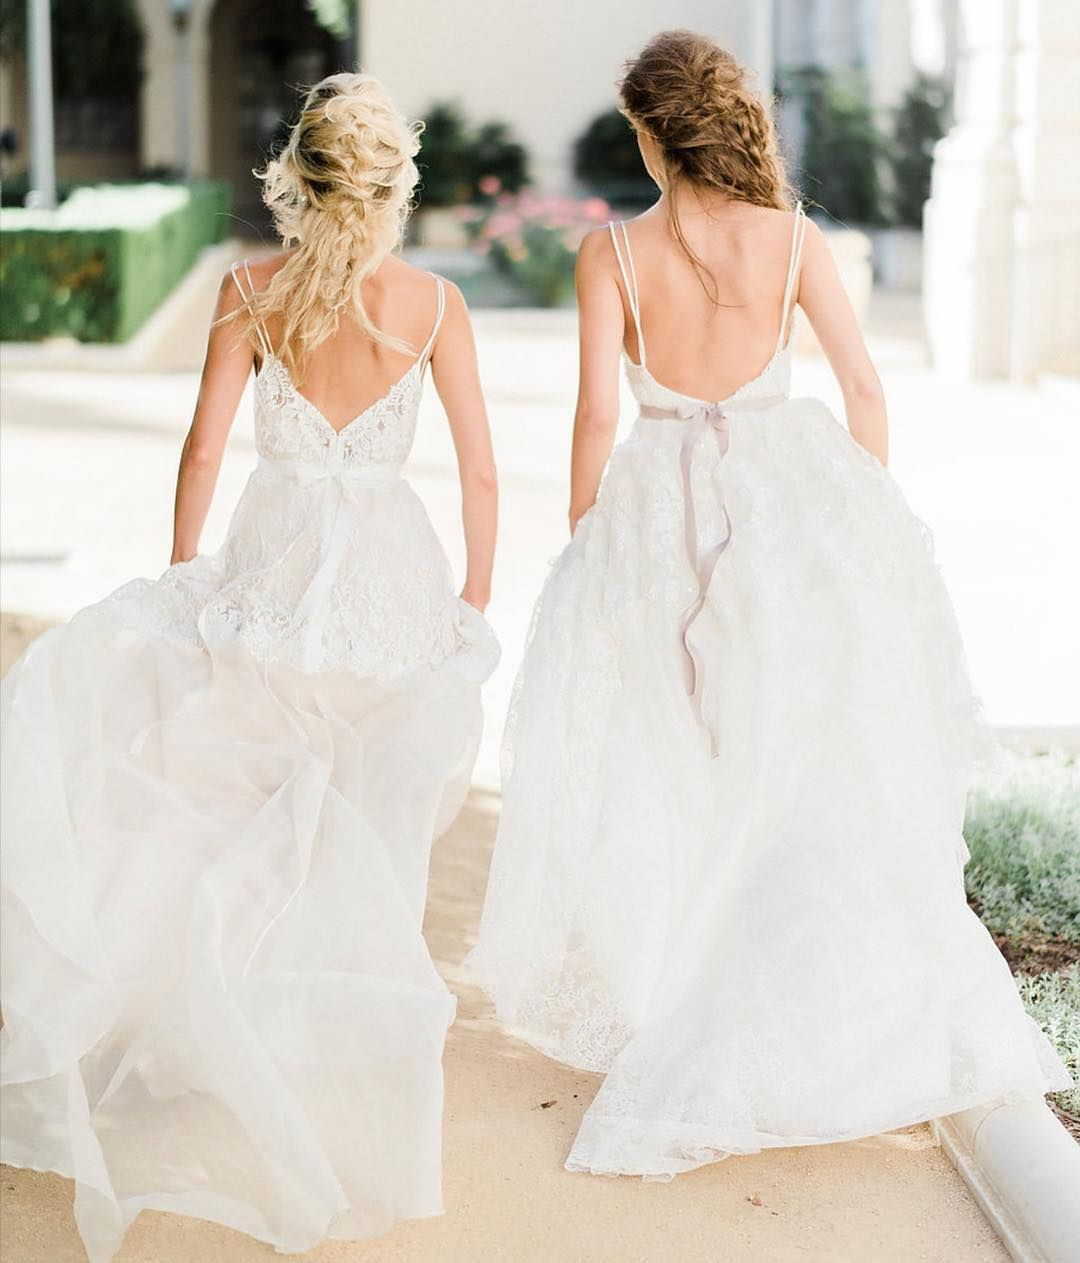 Celebrating the romantic the bohemian the untraditional and most